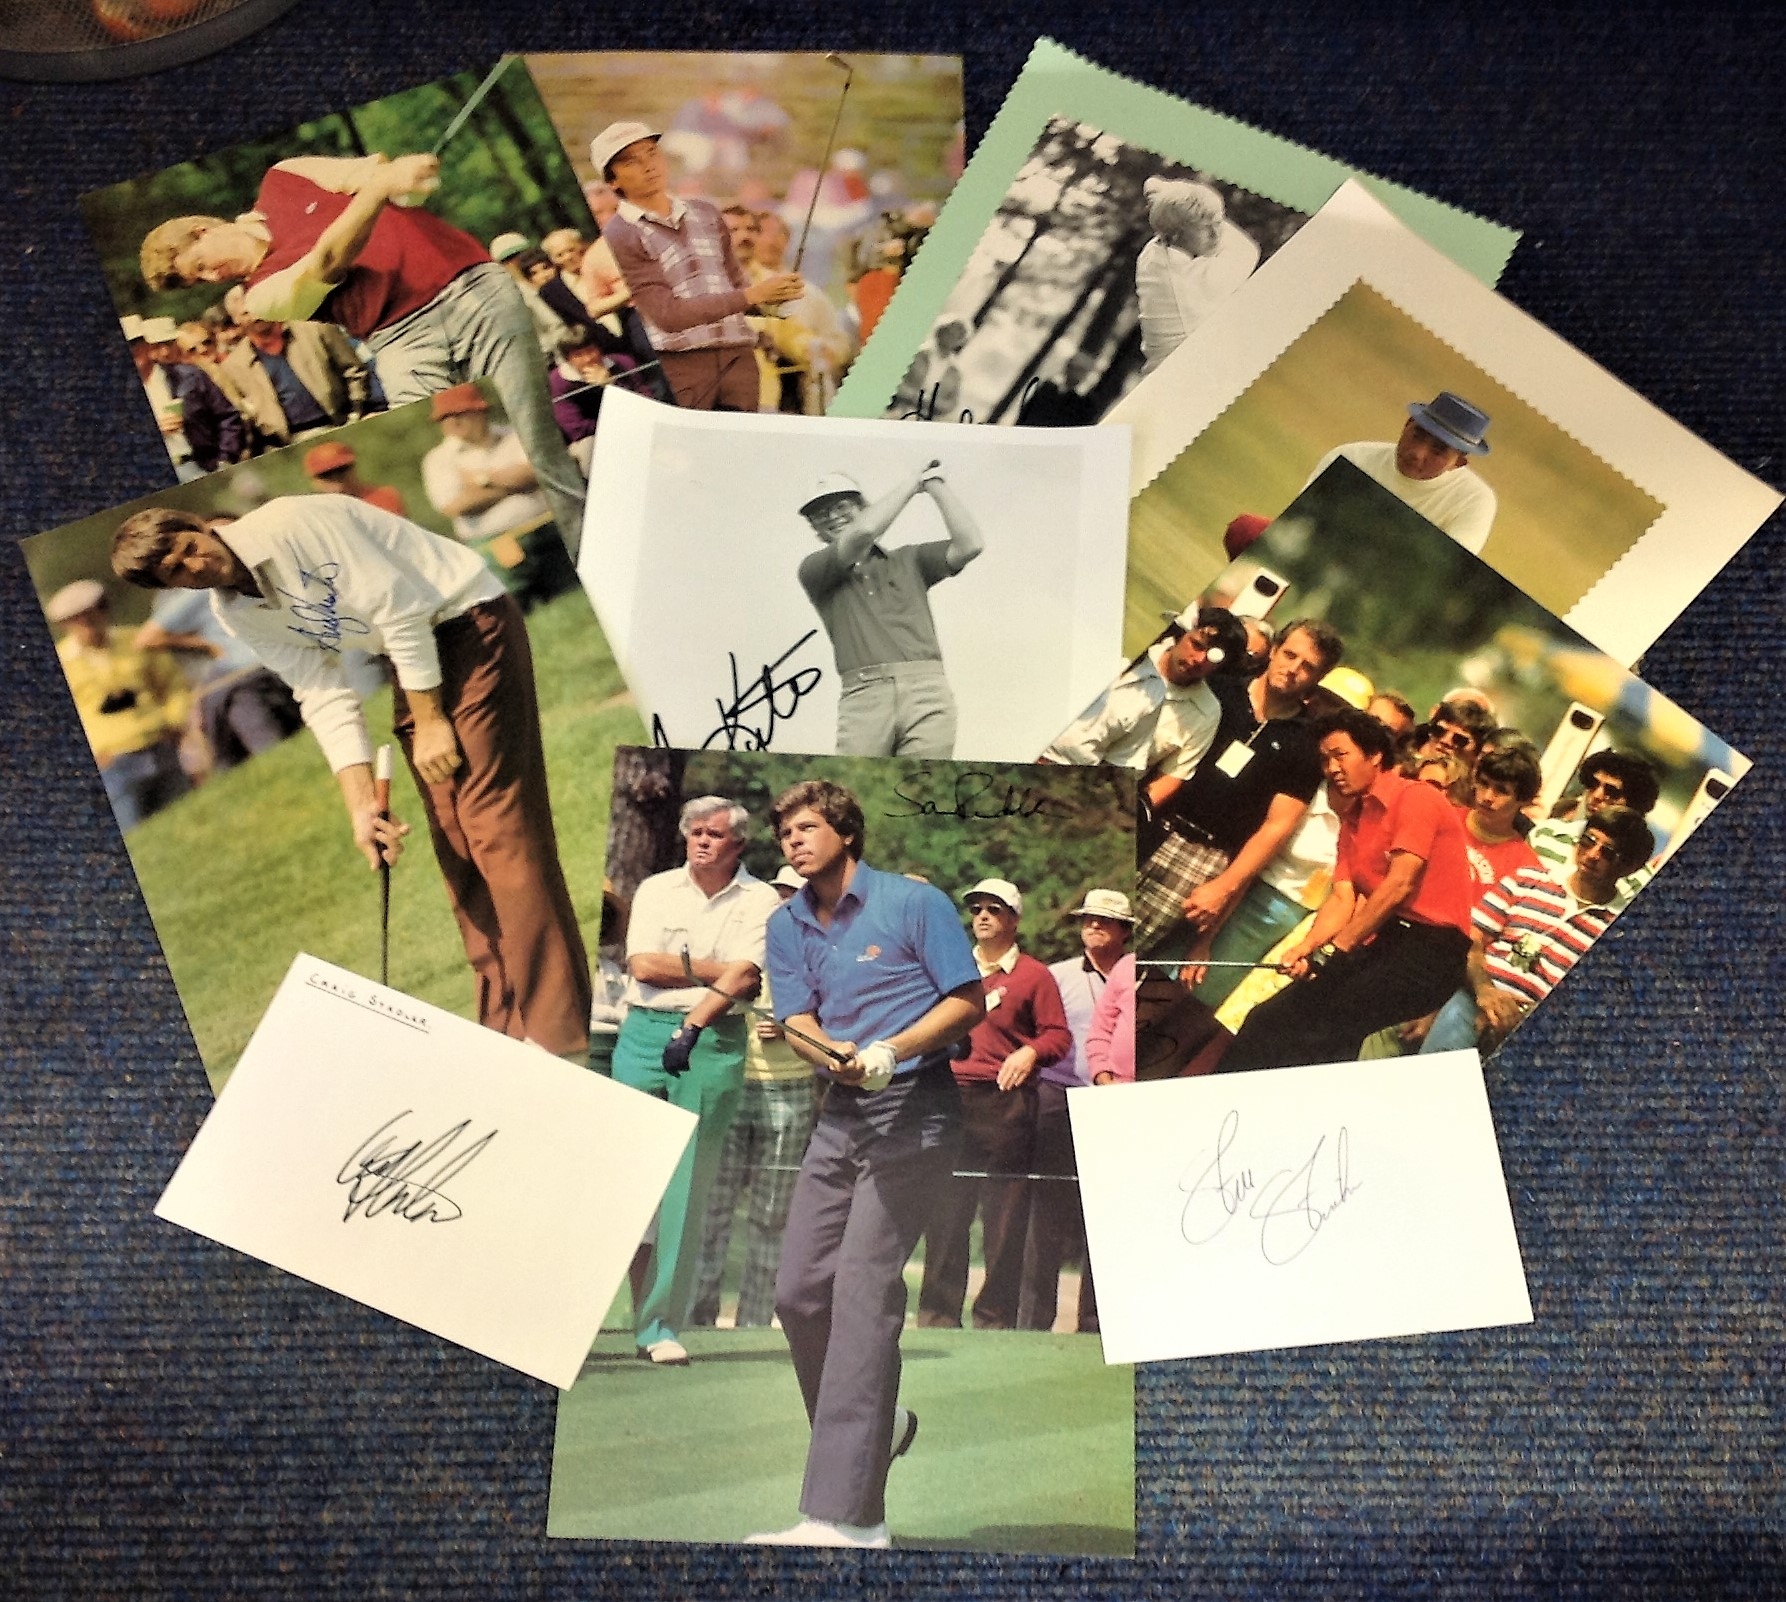 Lot 2 - Golf collection 10 signed photos and signature pieces from some legendary names from the game